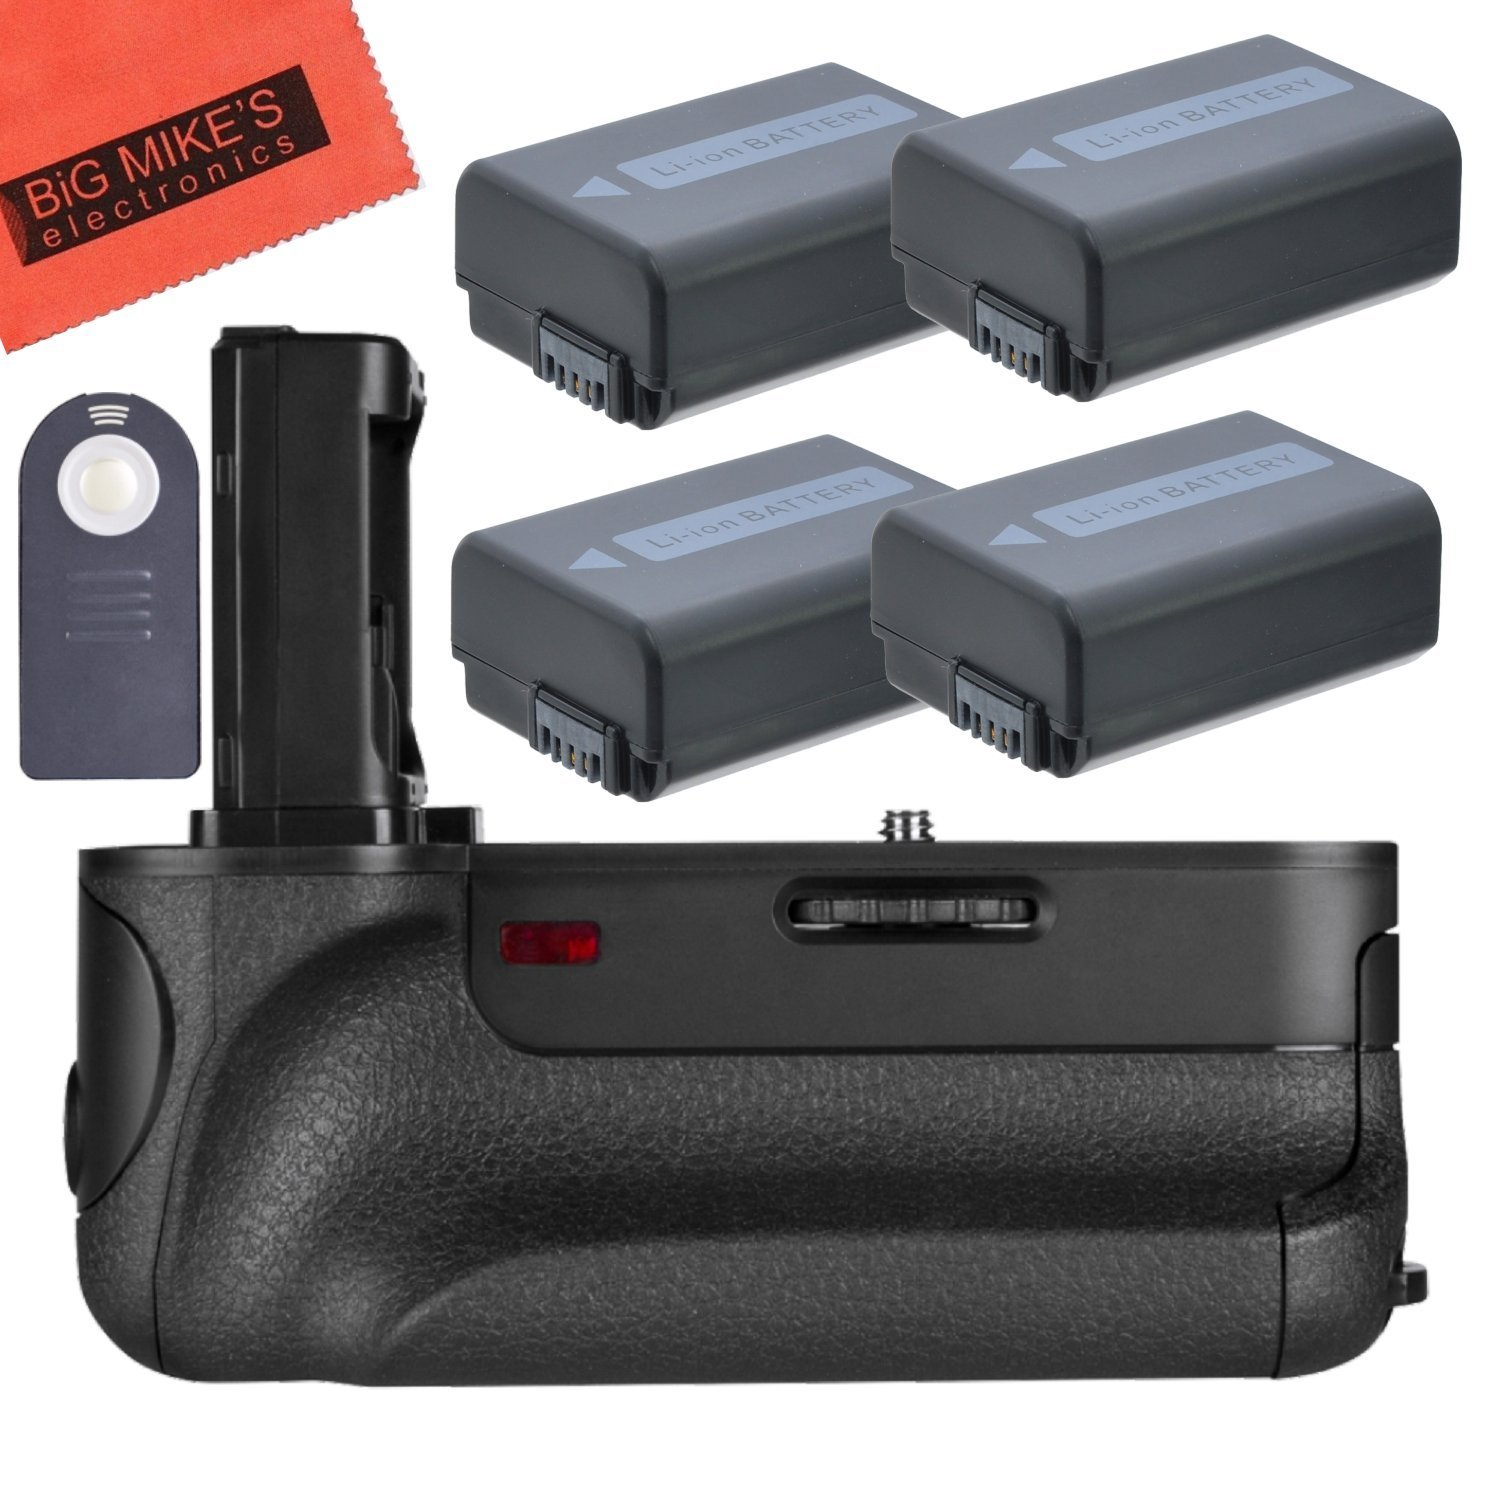 Battery Grip Kit for Sony Alpha A7, A7R, A7S DSLR Camera (VGC1EM replacement) - Includes Qty 4 Replacement NP-FW50 Batteries + AC/DC Battery Charger + Vertical Battery Grip Big Mike' s NPFW50